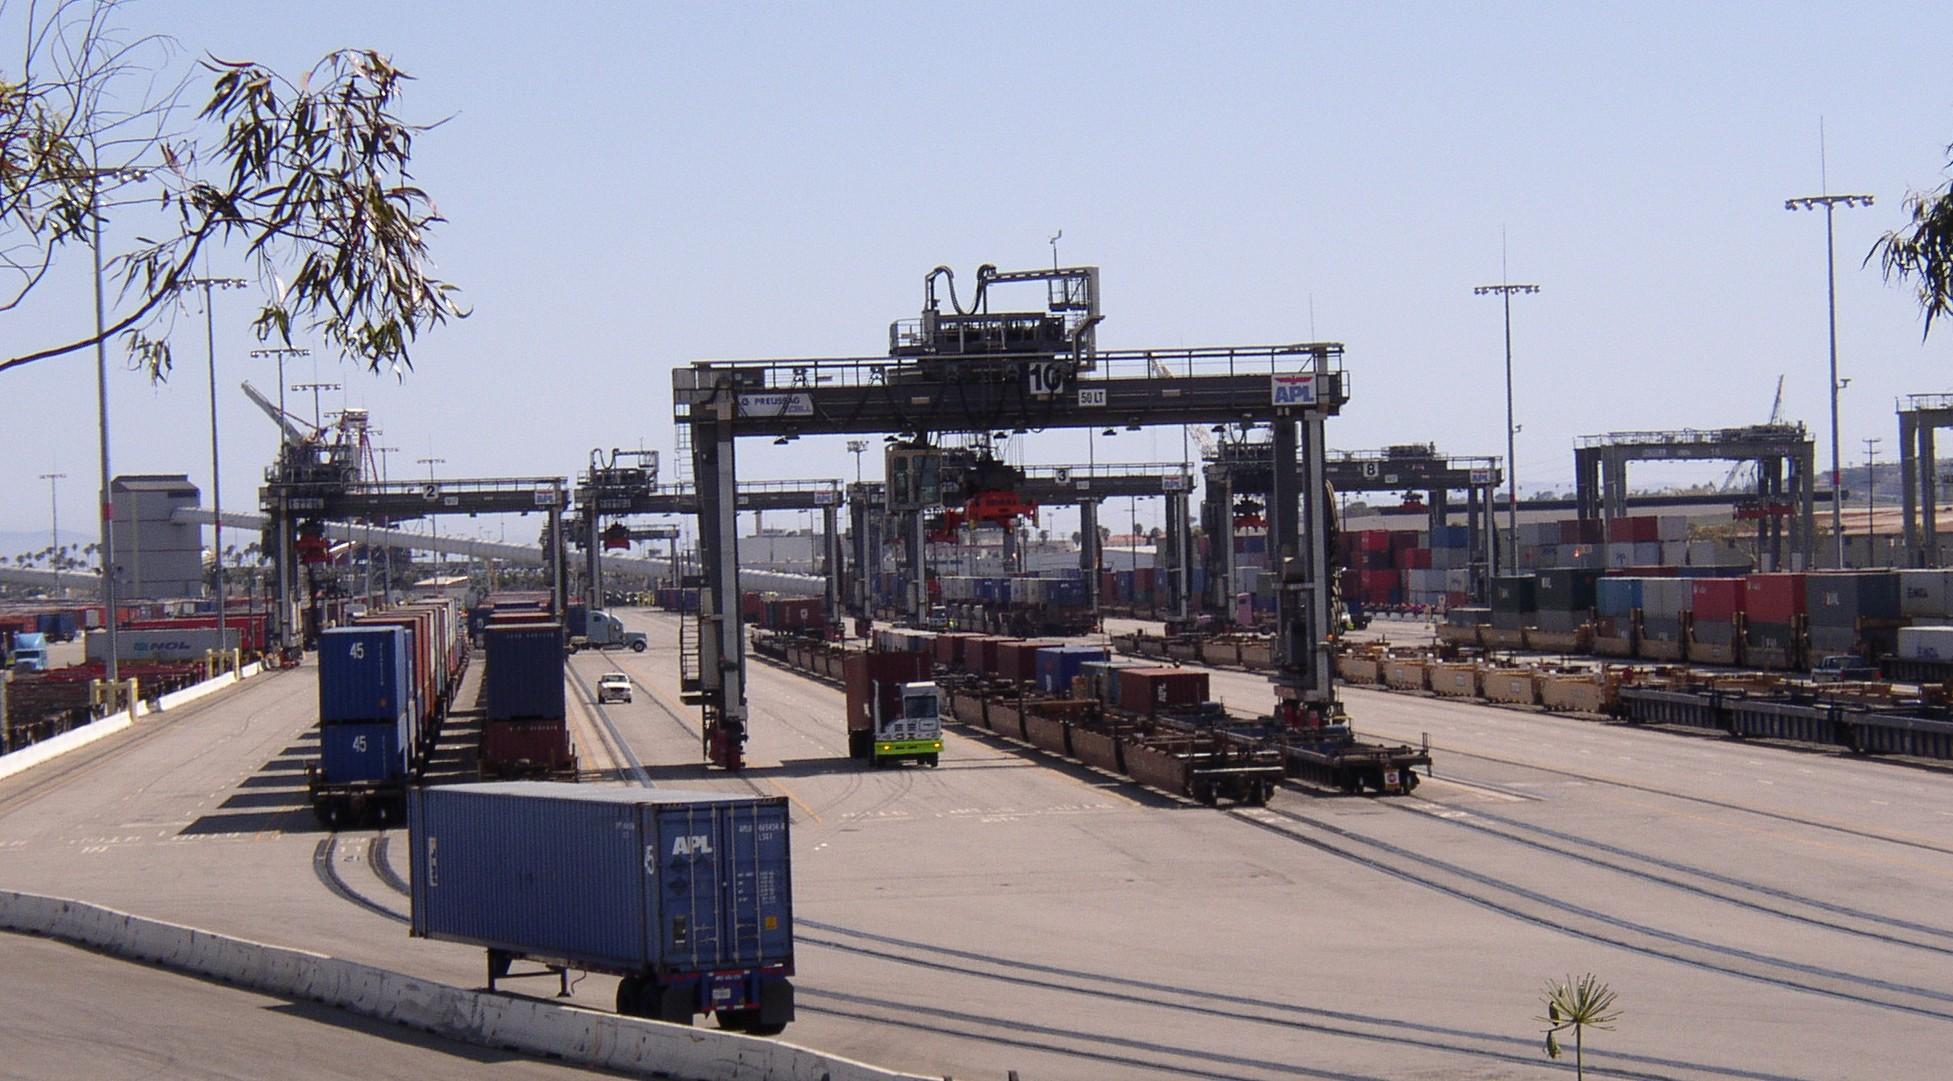 Intermodal Freight Transport Tractor Amp Construction